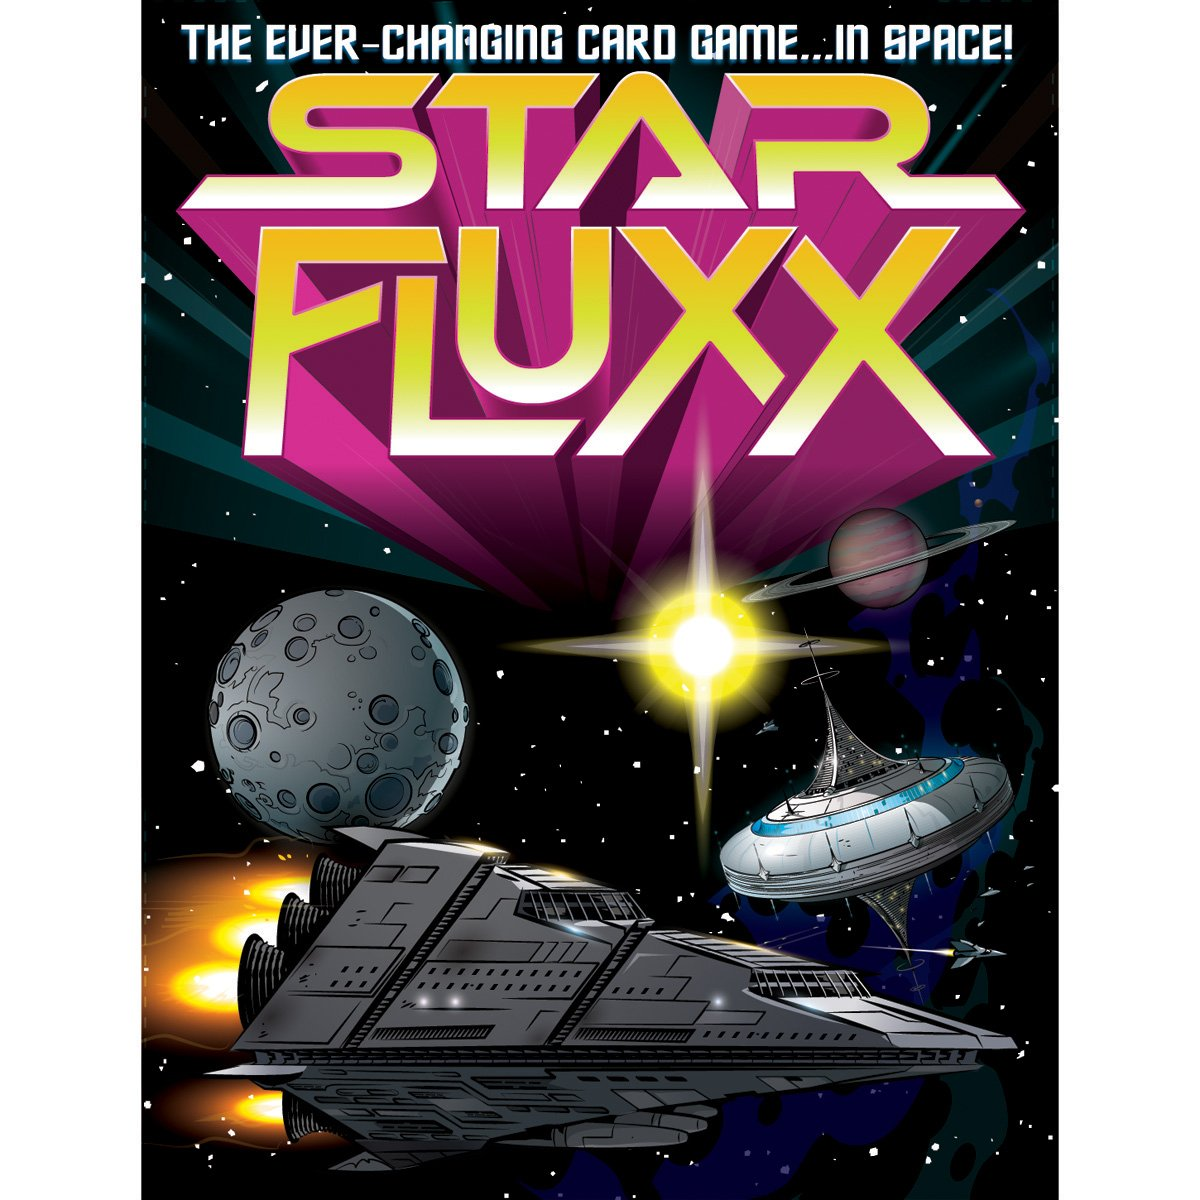 Star Fluxx